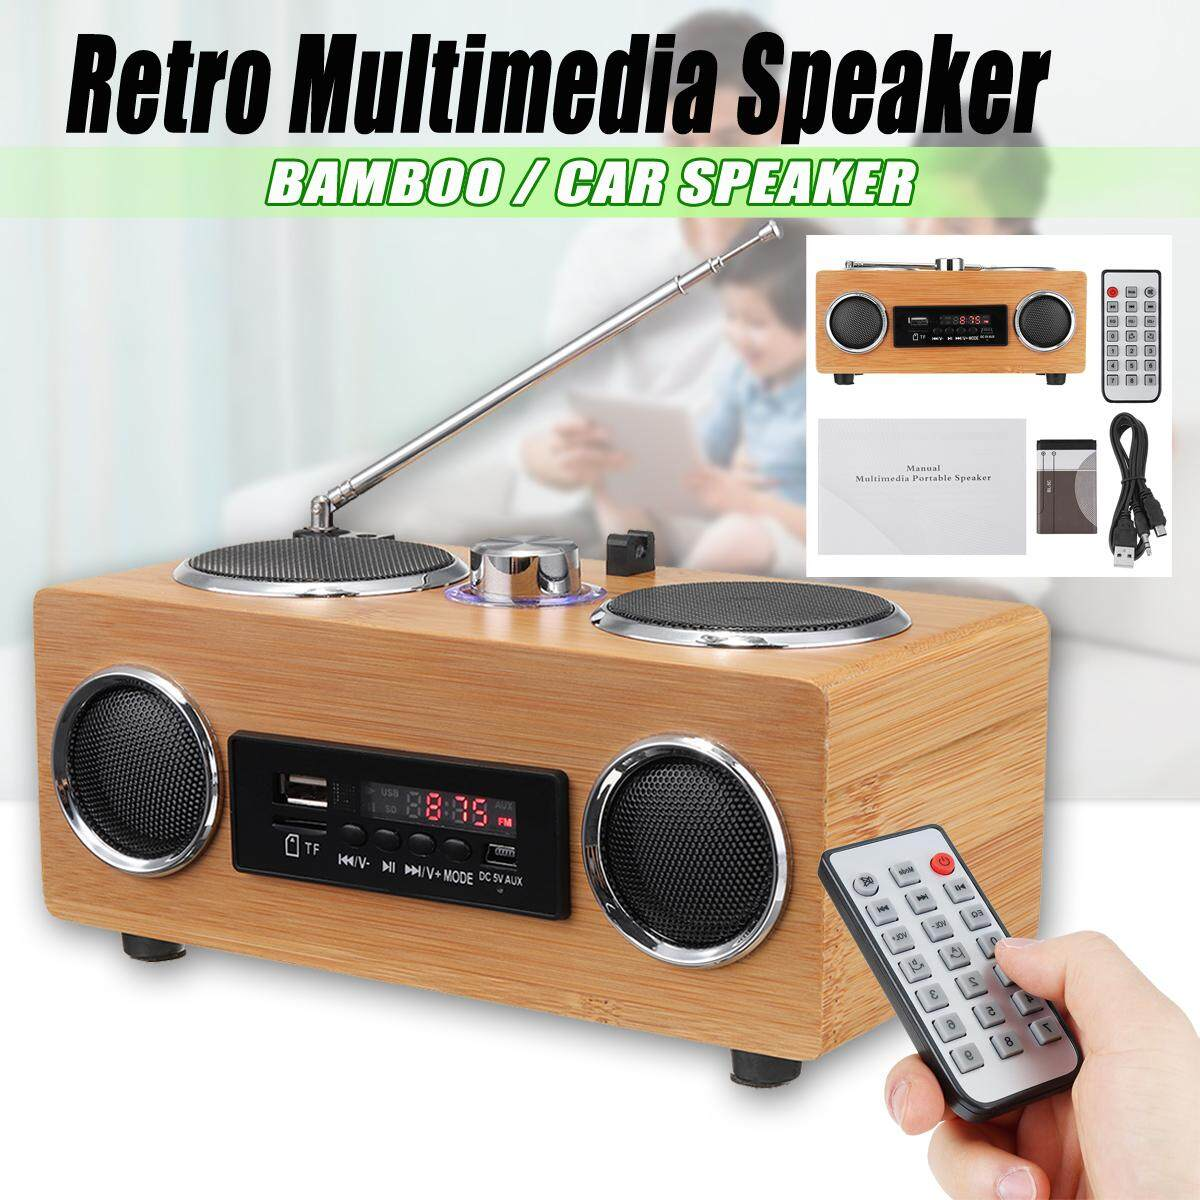 【free Shipping + Super Deal + Limited Offer】retro Vintage Radio Super Bass Fm Radio Bamboo Multimedia Speaker Tf Card/usb/fm Radio/mp3 Player Portable Radio Receiver Natural Bamboo Arts And Crafts By Freebang.